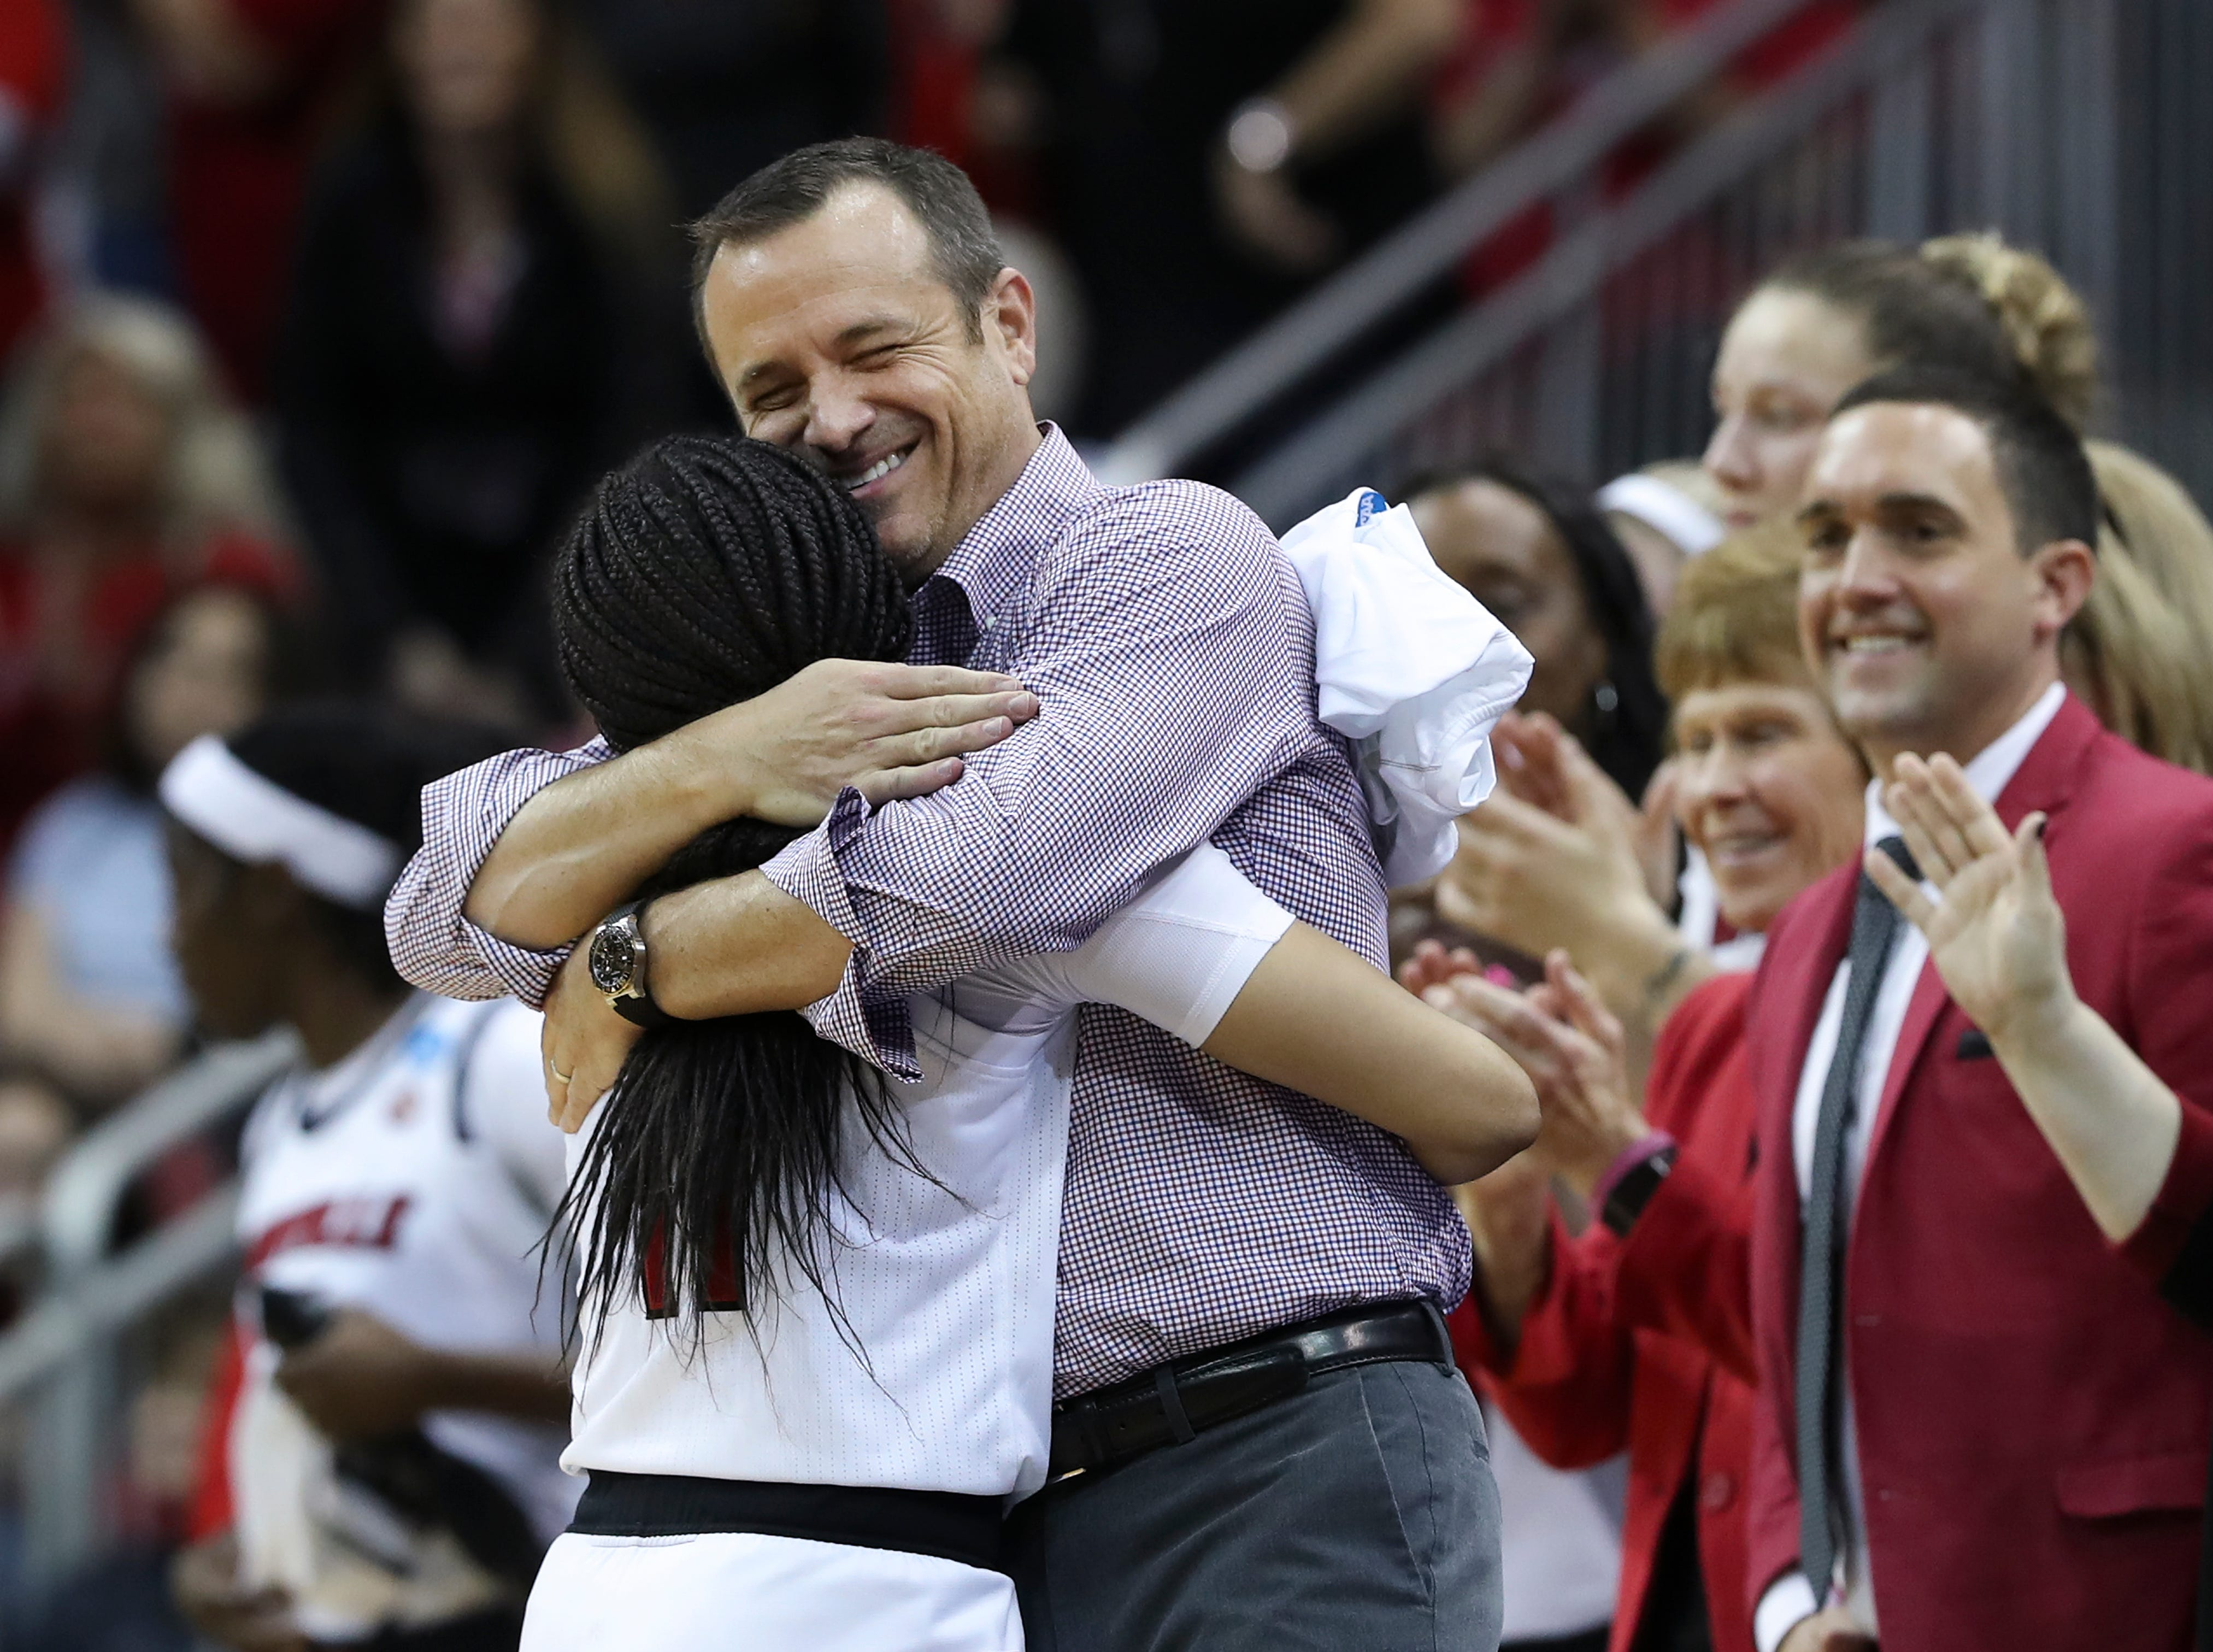 U of L head coach Jeff Walz embraced senior Arica Carter (11) after their 71-50 defeat of Michigan in the second round of their NCAA Tournament game at the Yum Center.  They advance to the Sweet 16 in the Albany regional.  It would be her last game as a Cardinal in the Yum Center. Mar. 24, 2019.